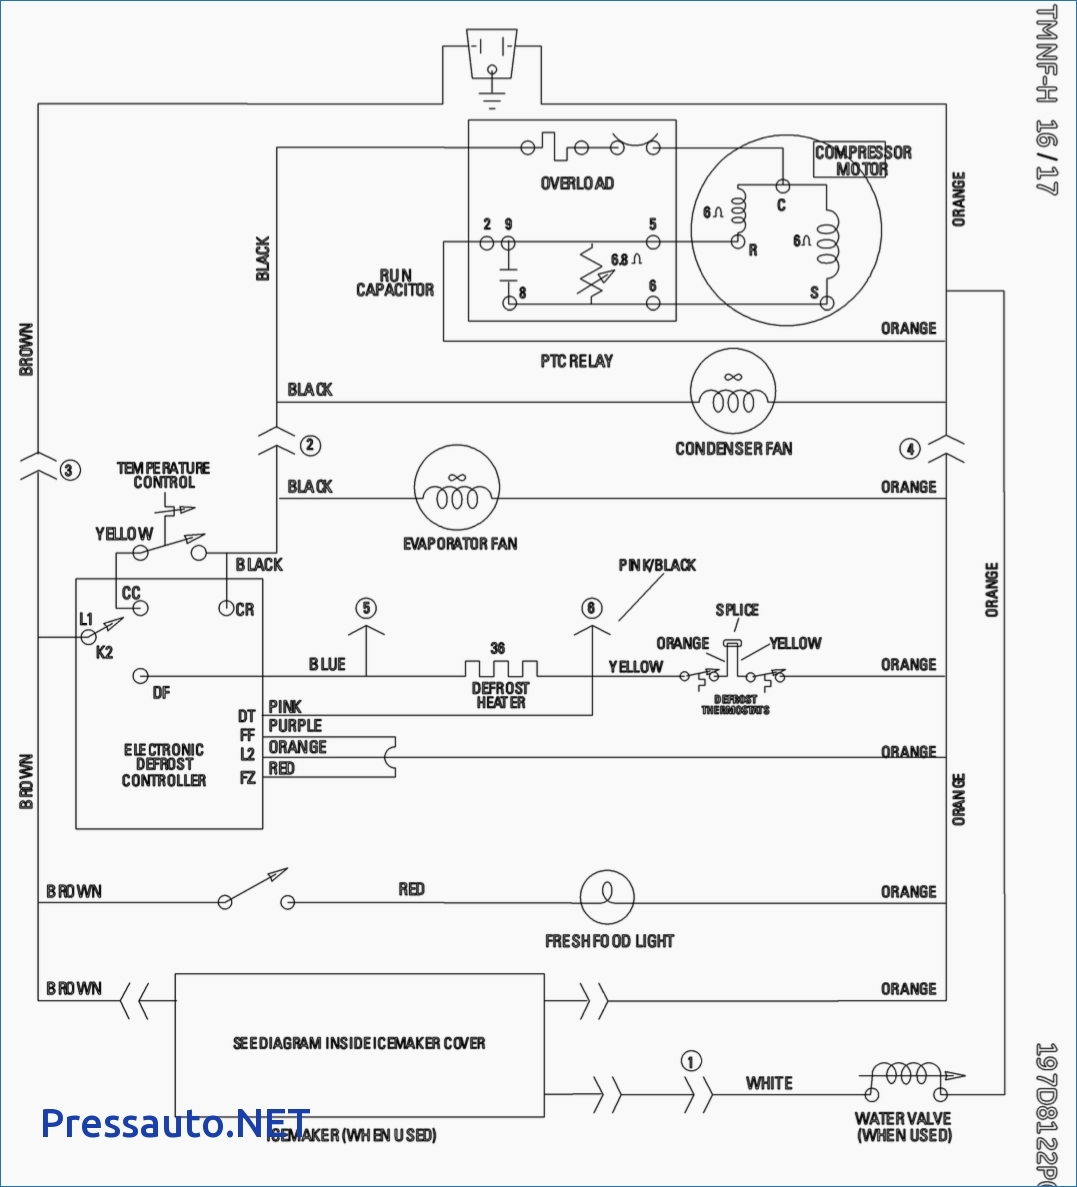 whirlpool refrigerator wiring diagram | free wiring diagram whirlpool wiring diagram whirlpool wire diagram